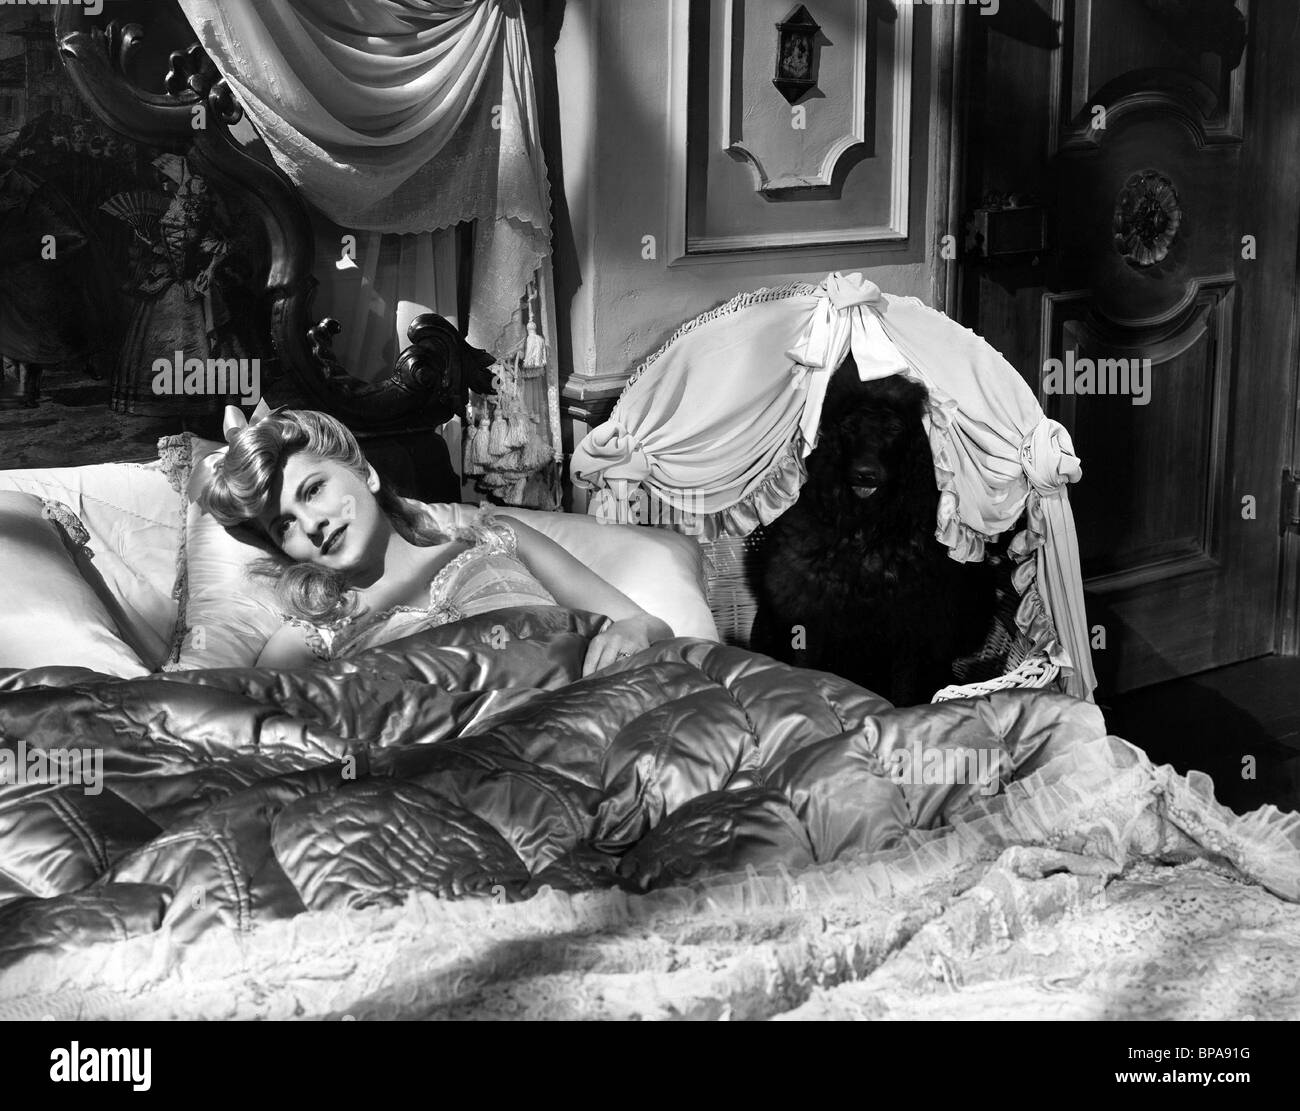 JOAN FONTAINE THE EMPEROR WALTZ (1948) - Stock Image